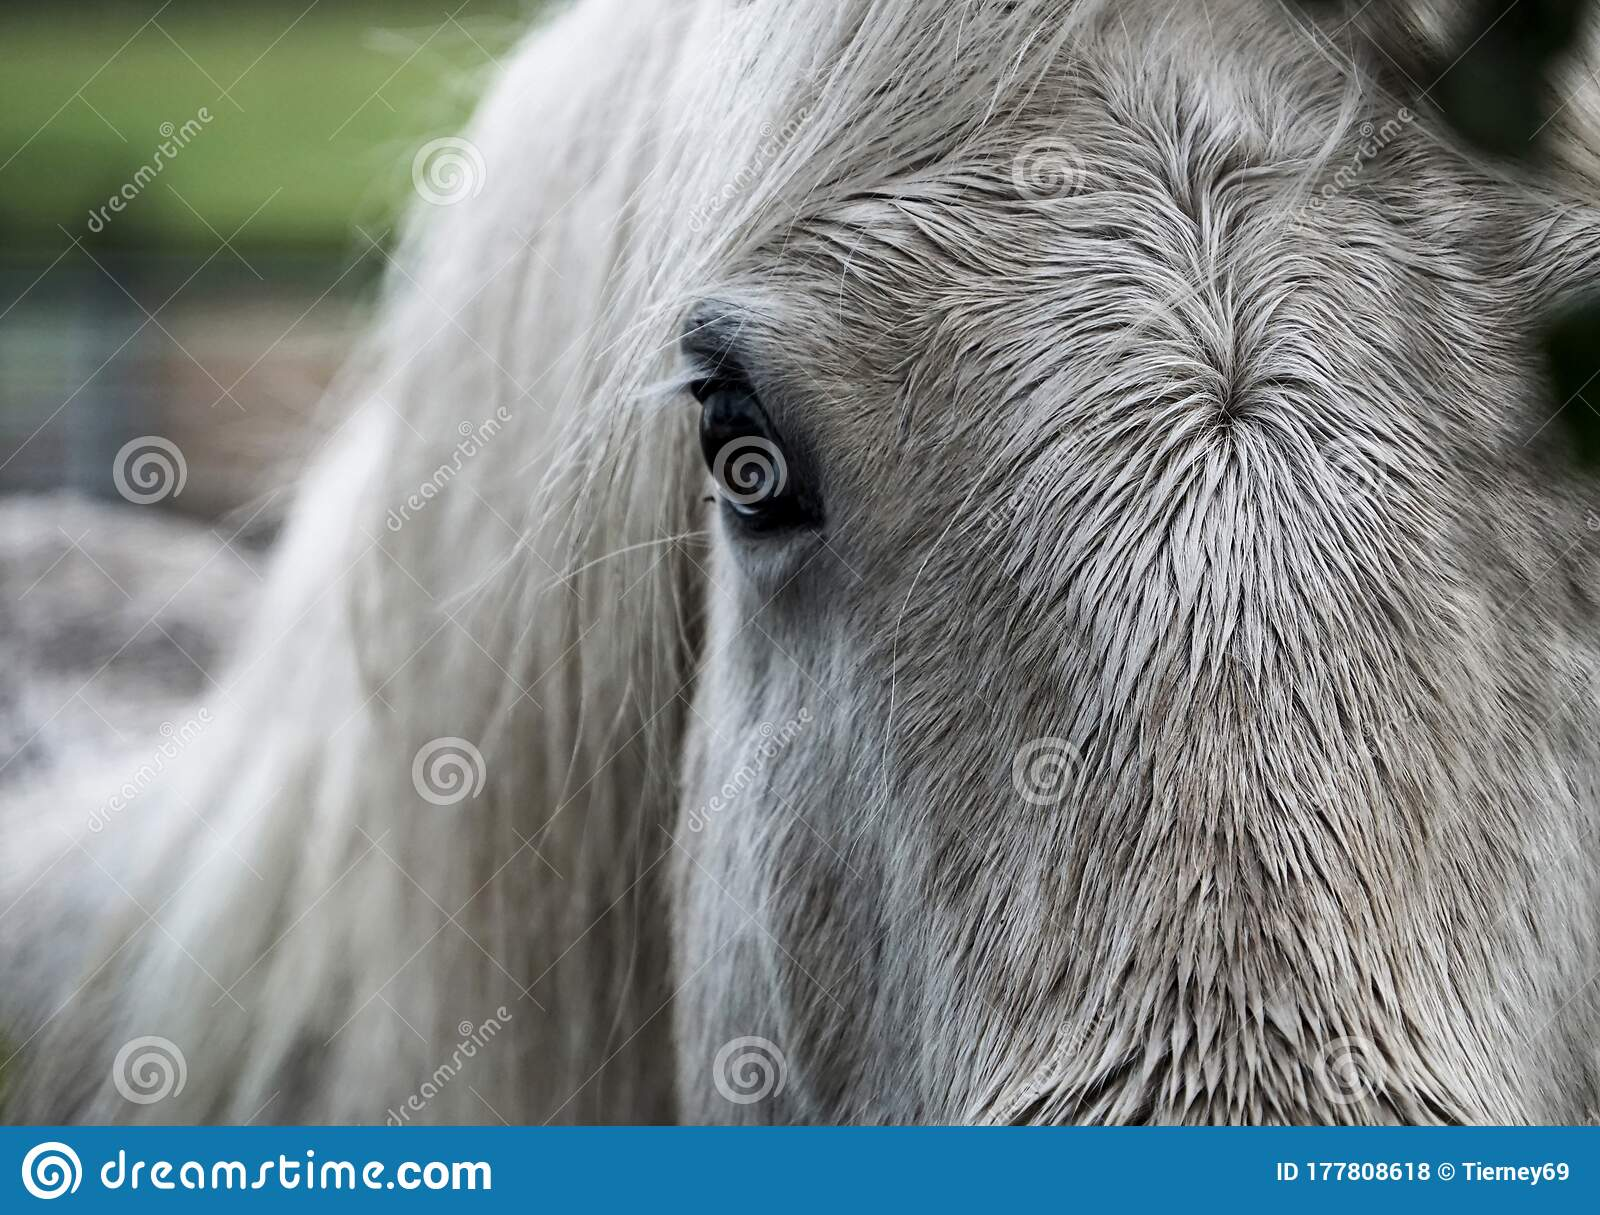 Beautiful Closeup Of White Horse Face Focus On Forelock And Dark Eye Stock Photo Image Of Foal Nature 177808618